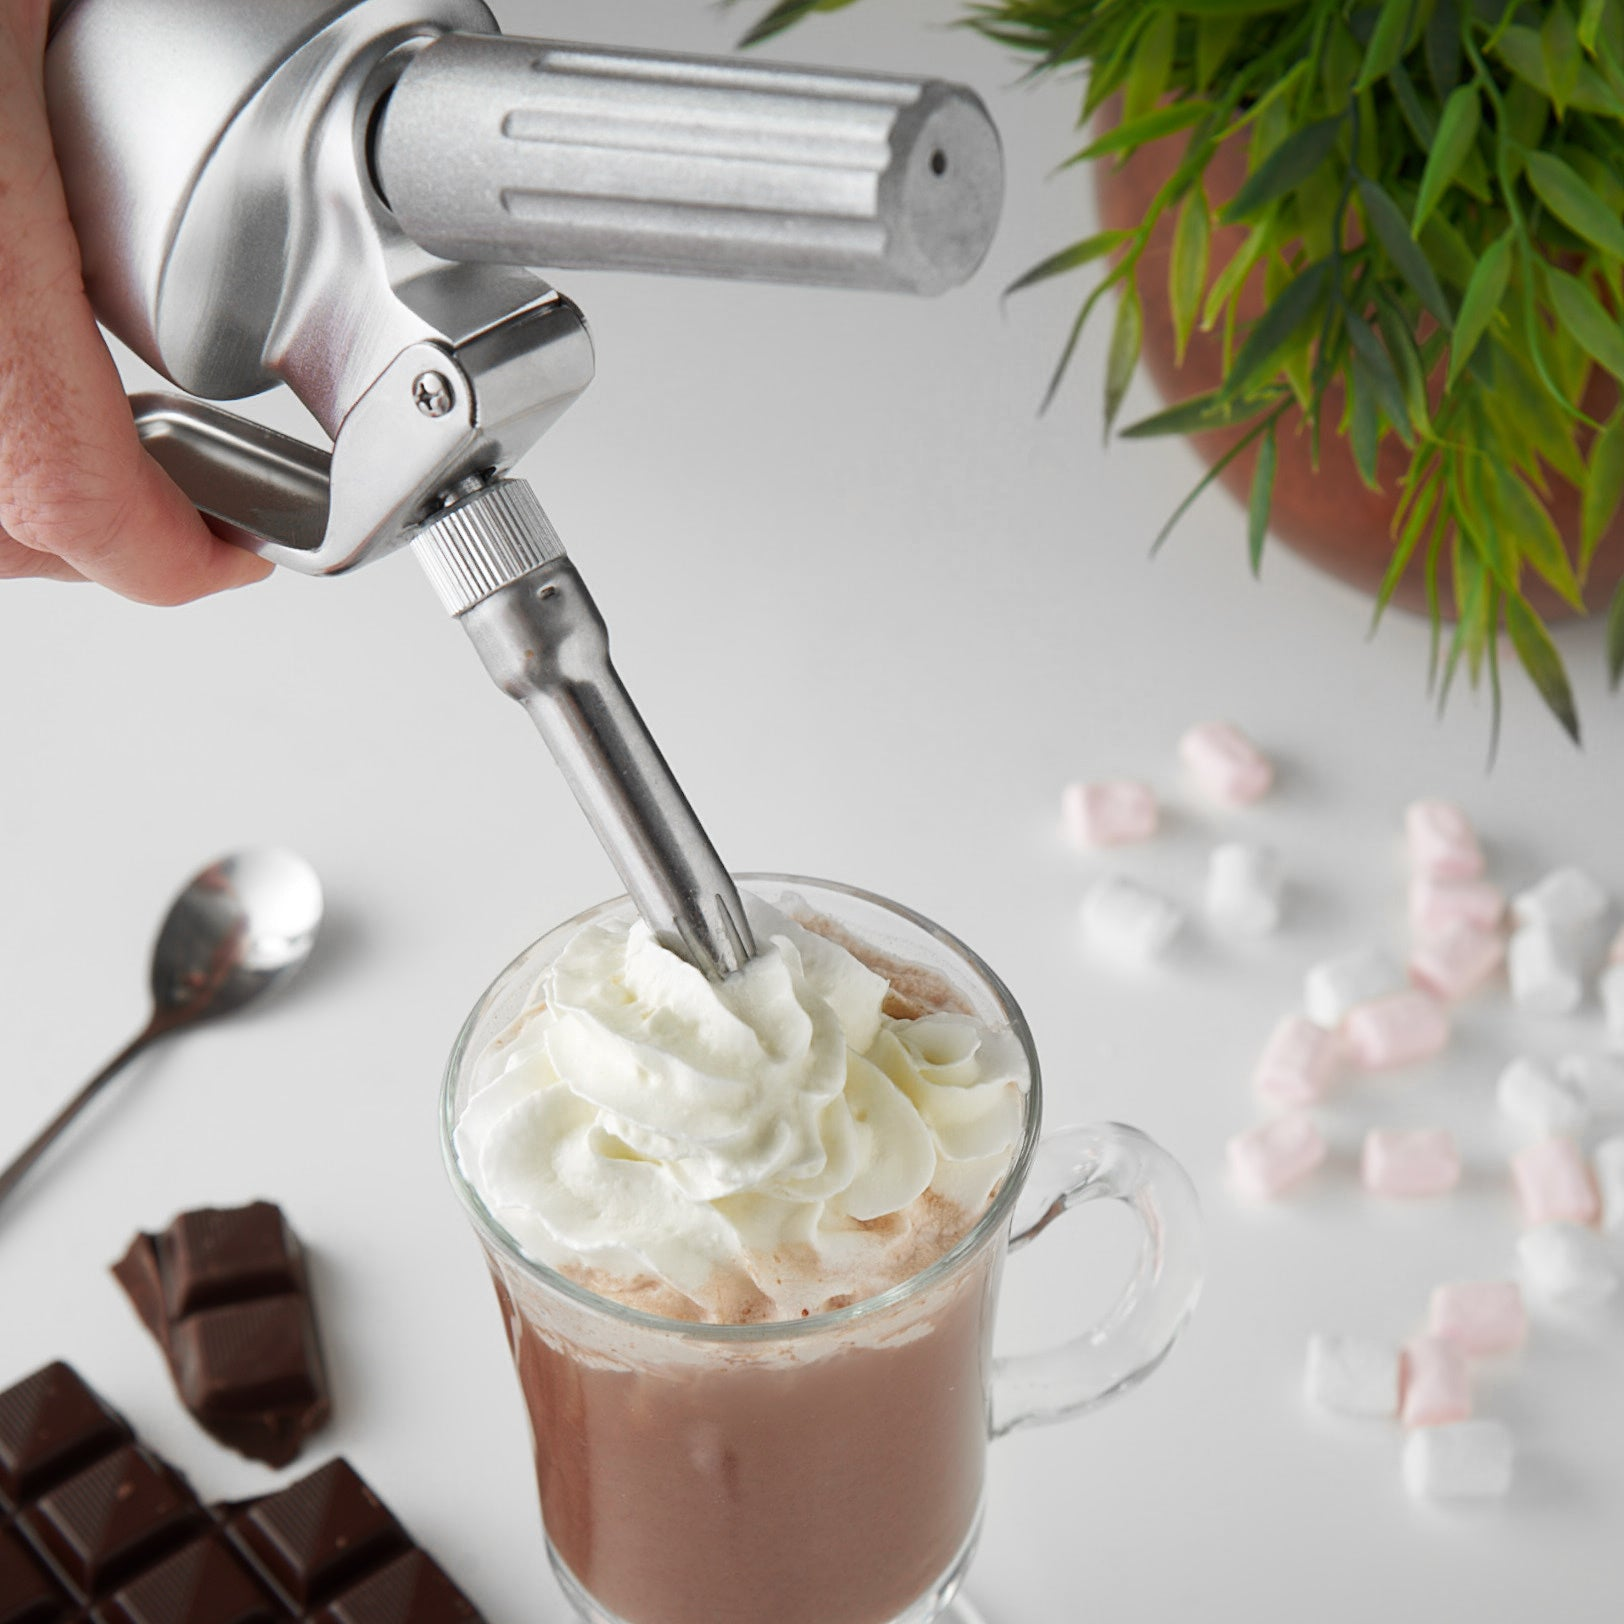 RuneSol Premium Stainless Steel Whipped Cream Dispenser